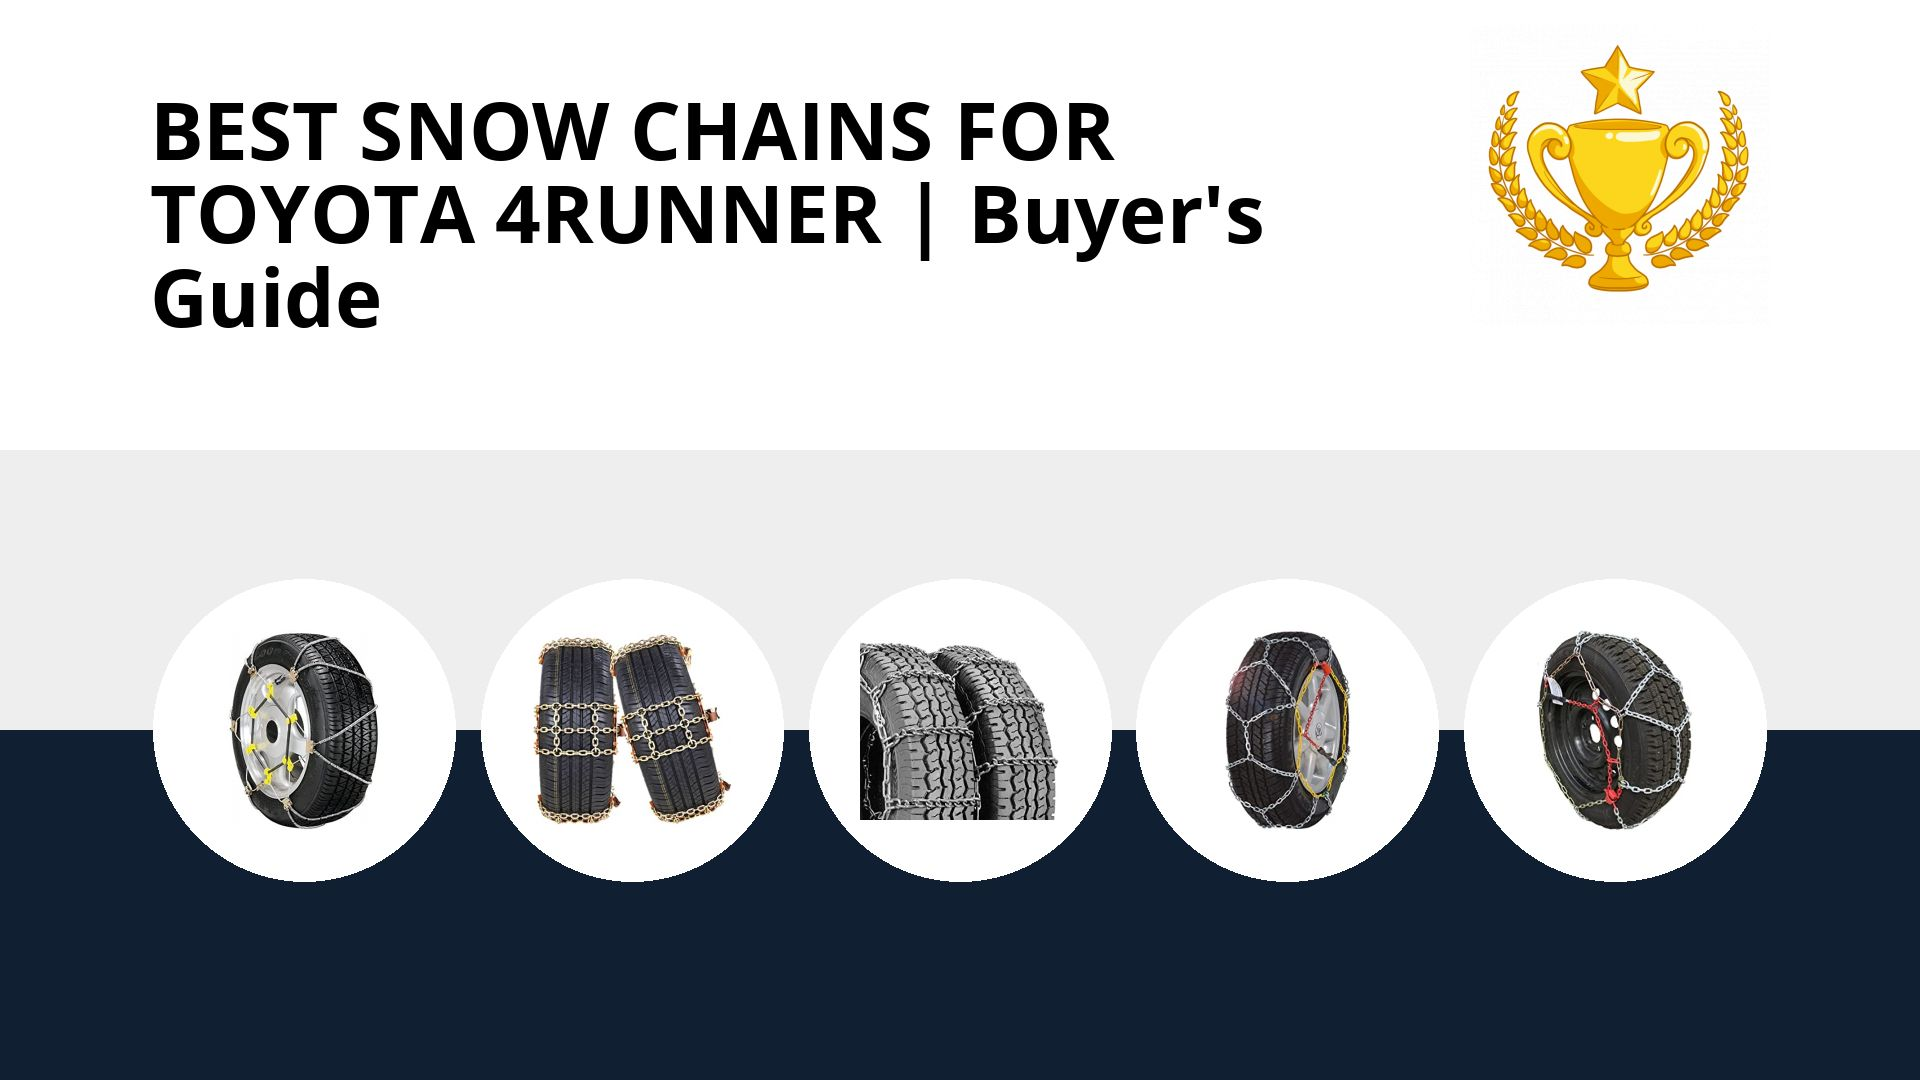 Best Snow Chains For Toyota 4runner: image